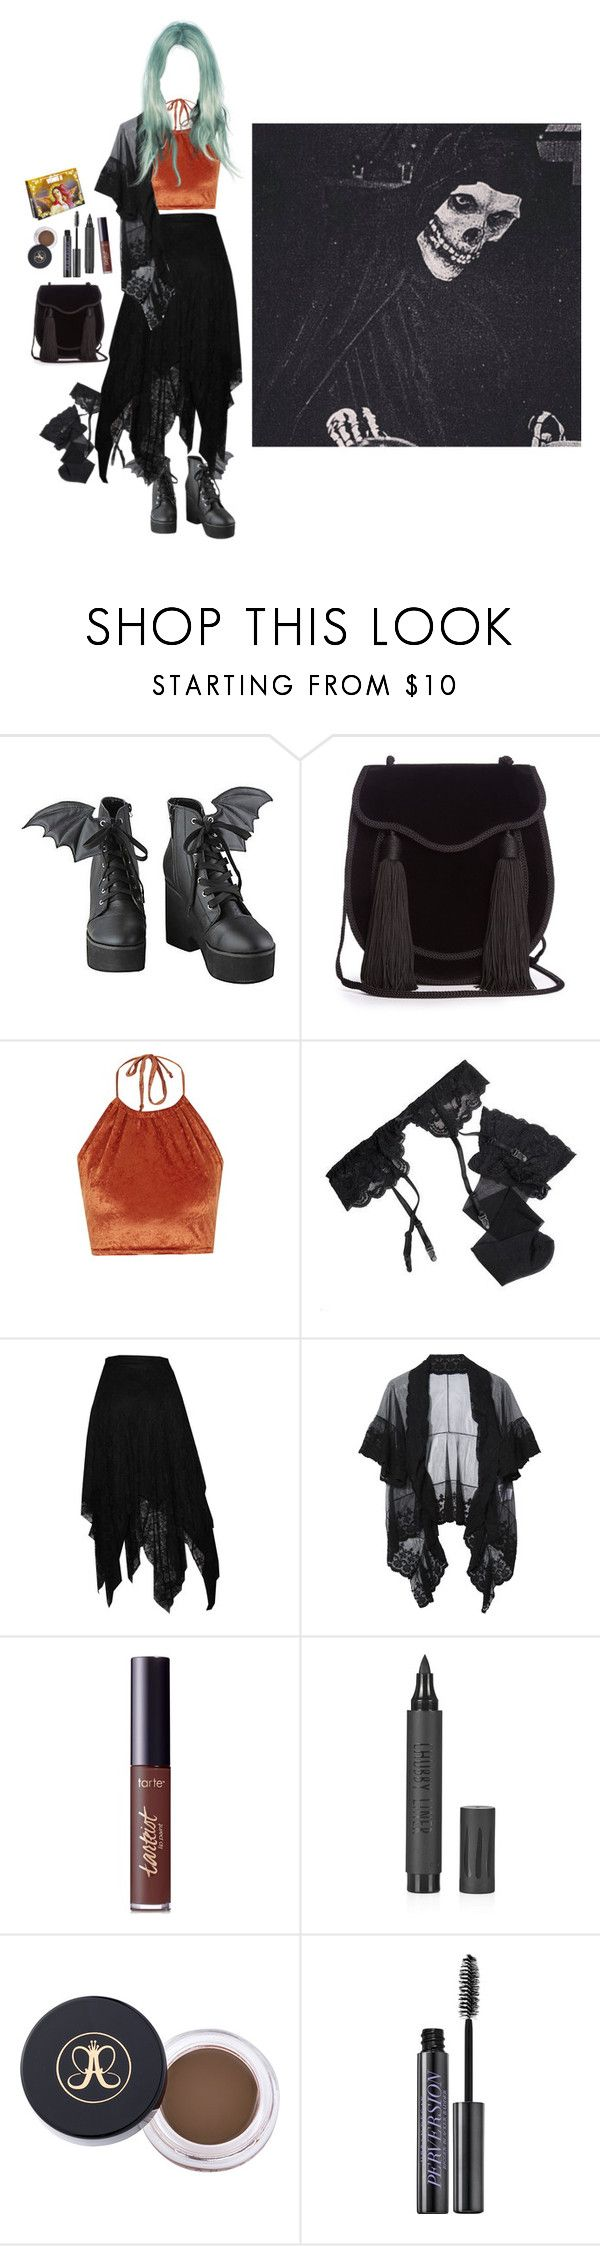 """""""💀🎃"""" by sierraelizabitch ❤ liked on Polyvore featuring Yves Saint Laurent, The Ragged Priest, Reger by Janet Reger, tarte, Topshop, Anastasia Beverly Hills, Urban Decay and Lime Crime"""